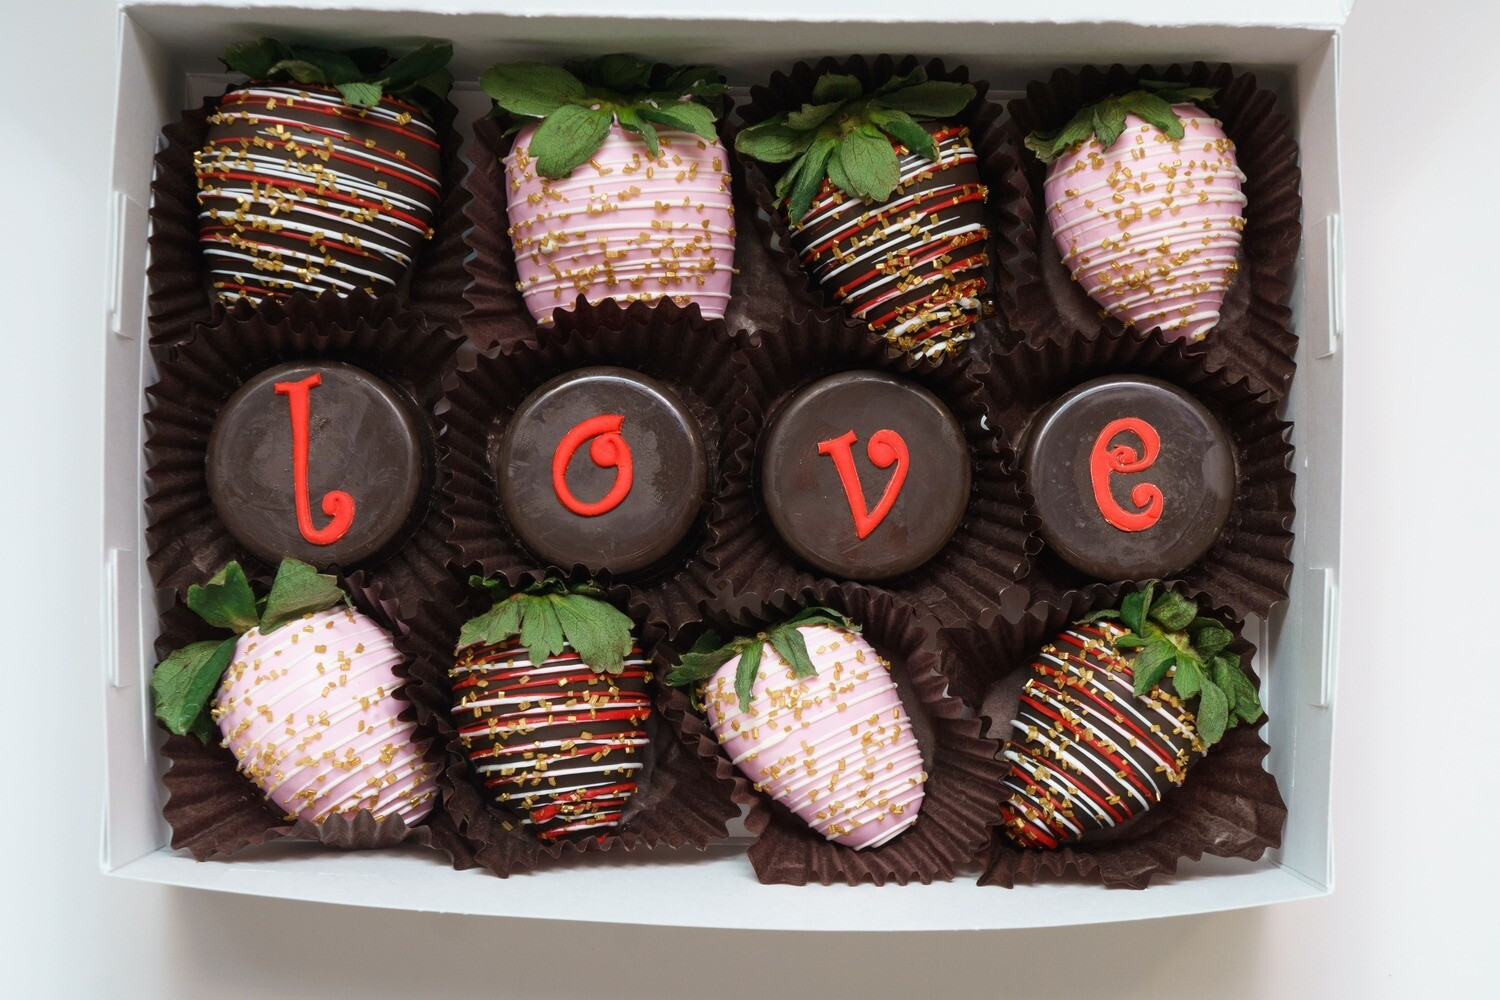 LOVE Chocolate Covered Oreos and Strawberries